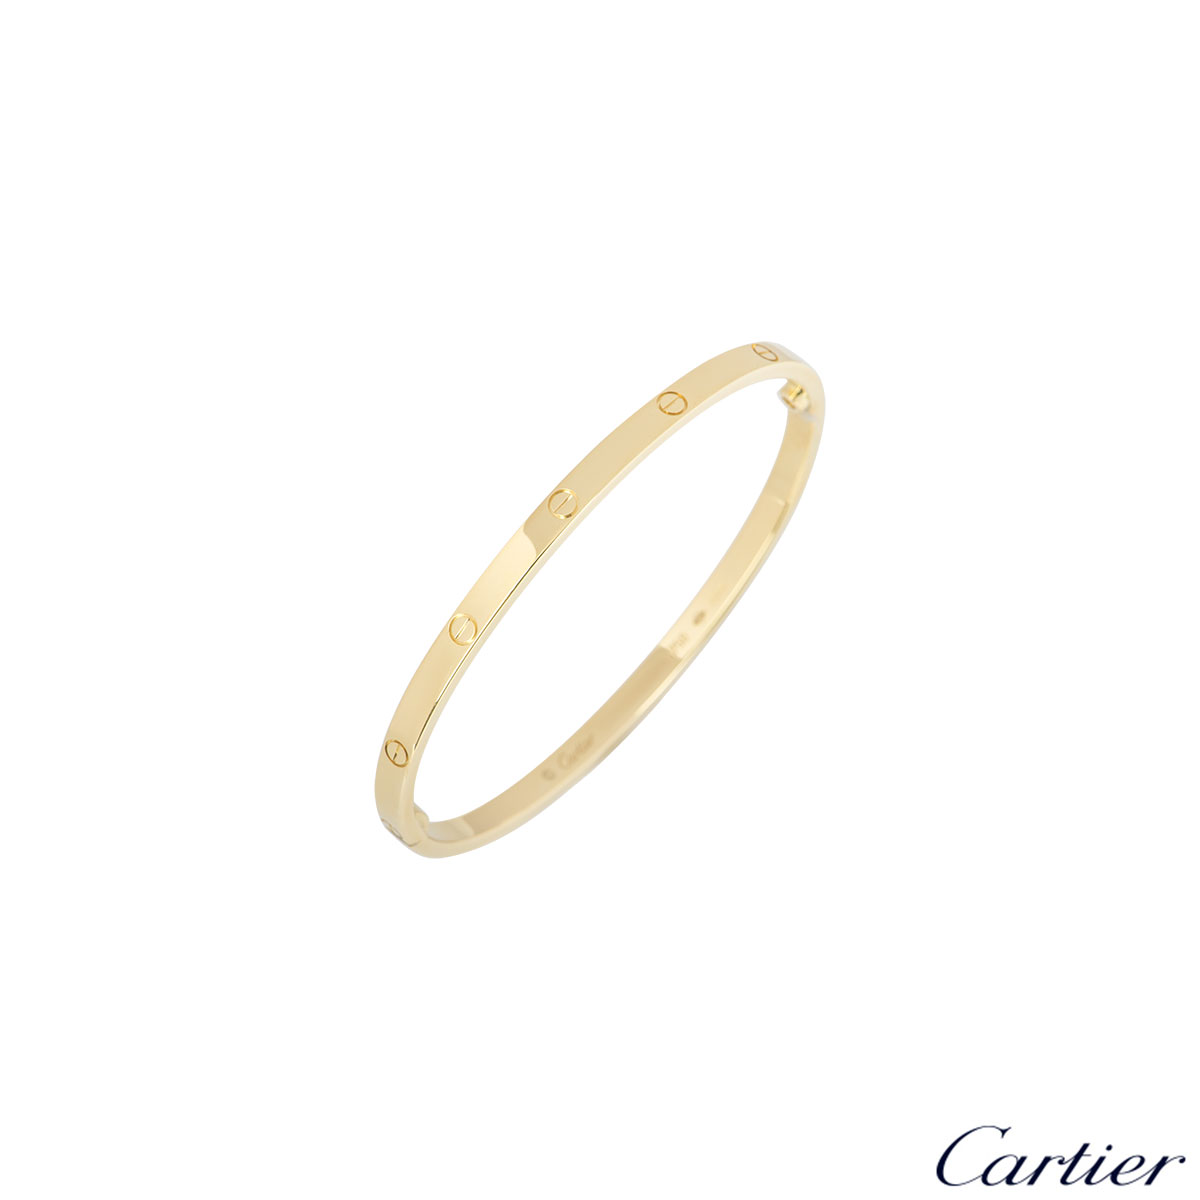 Cartier Yellow Gold Plain Love Bracelet SM Size 17 B6047517